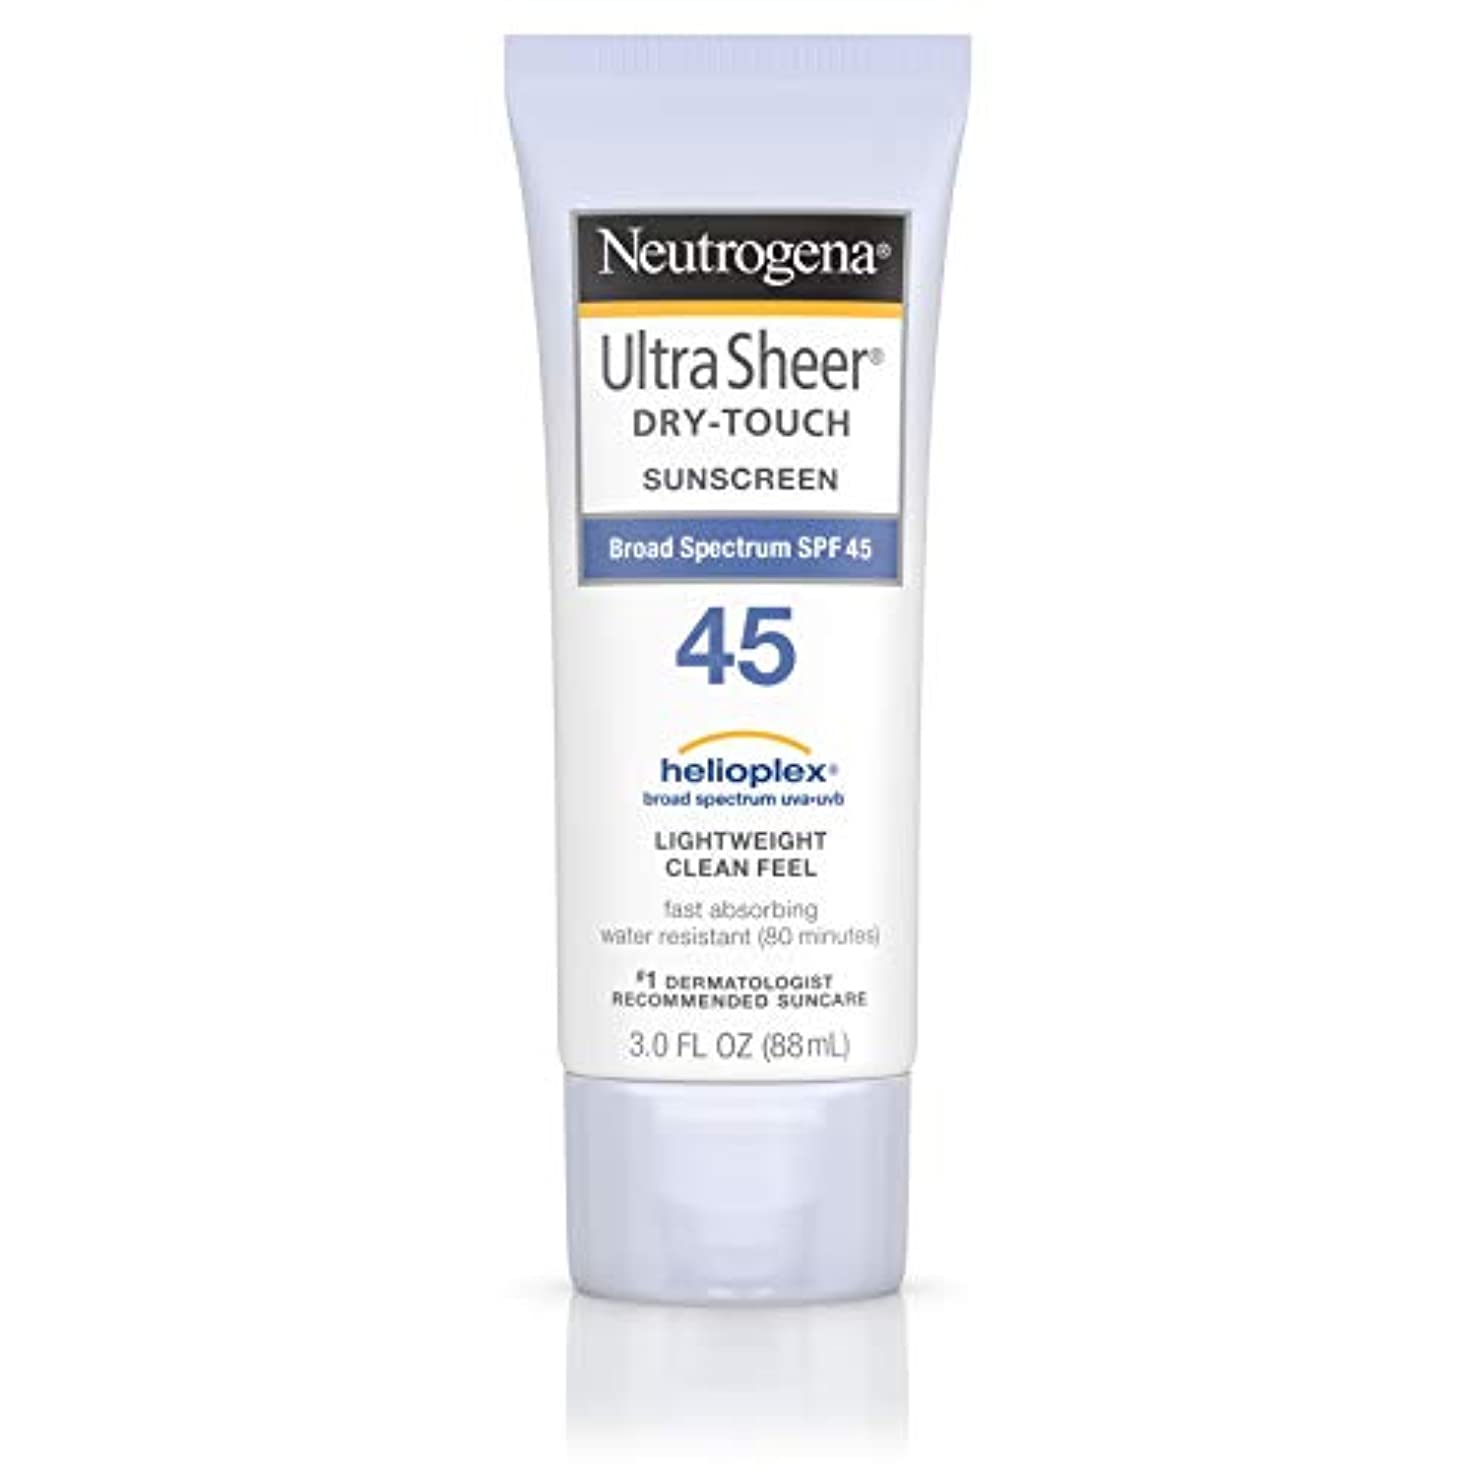 バンド空洞技術者海外直送品 Neutrogena Neutrogena Ultra Sheer Dry-Touch Sunblock Spf 45【並行輸入品】